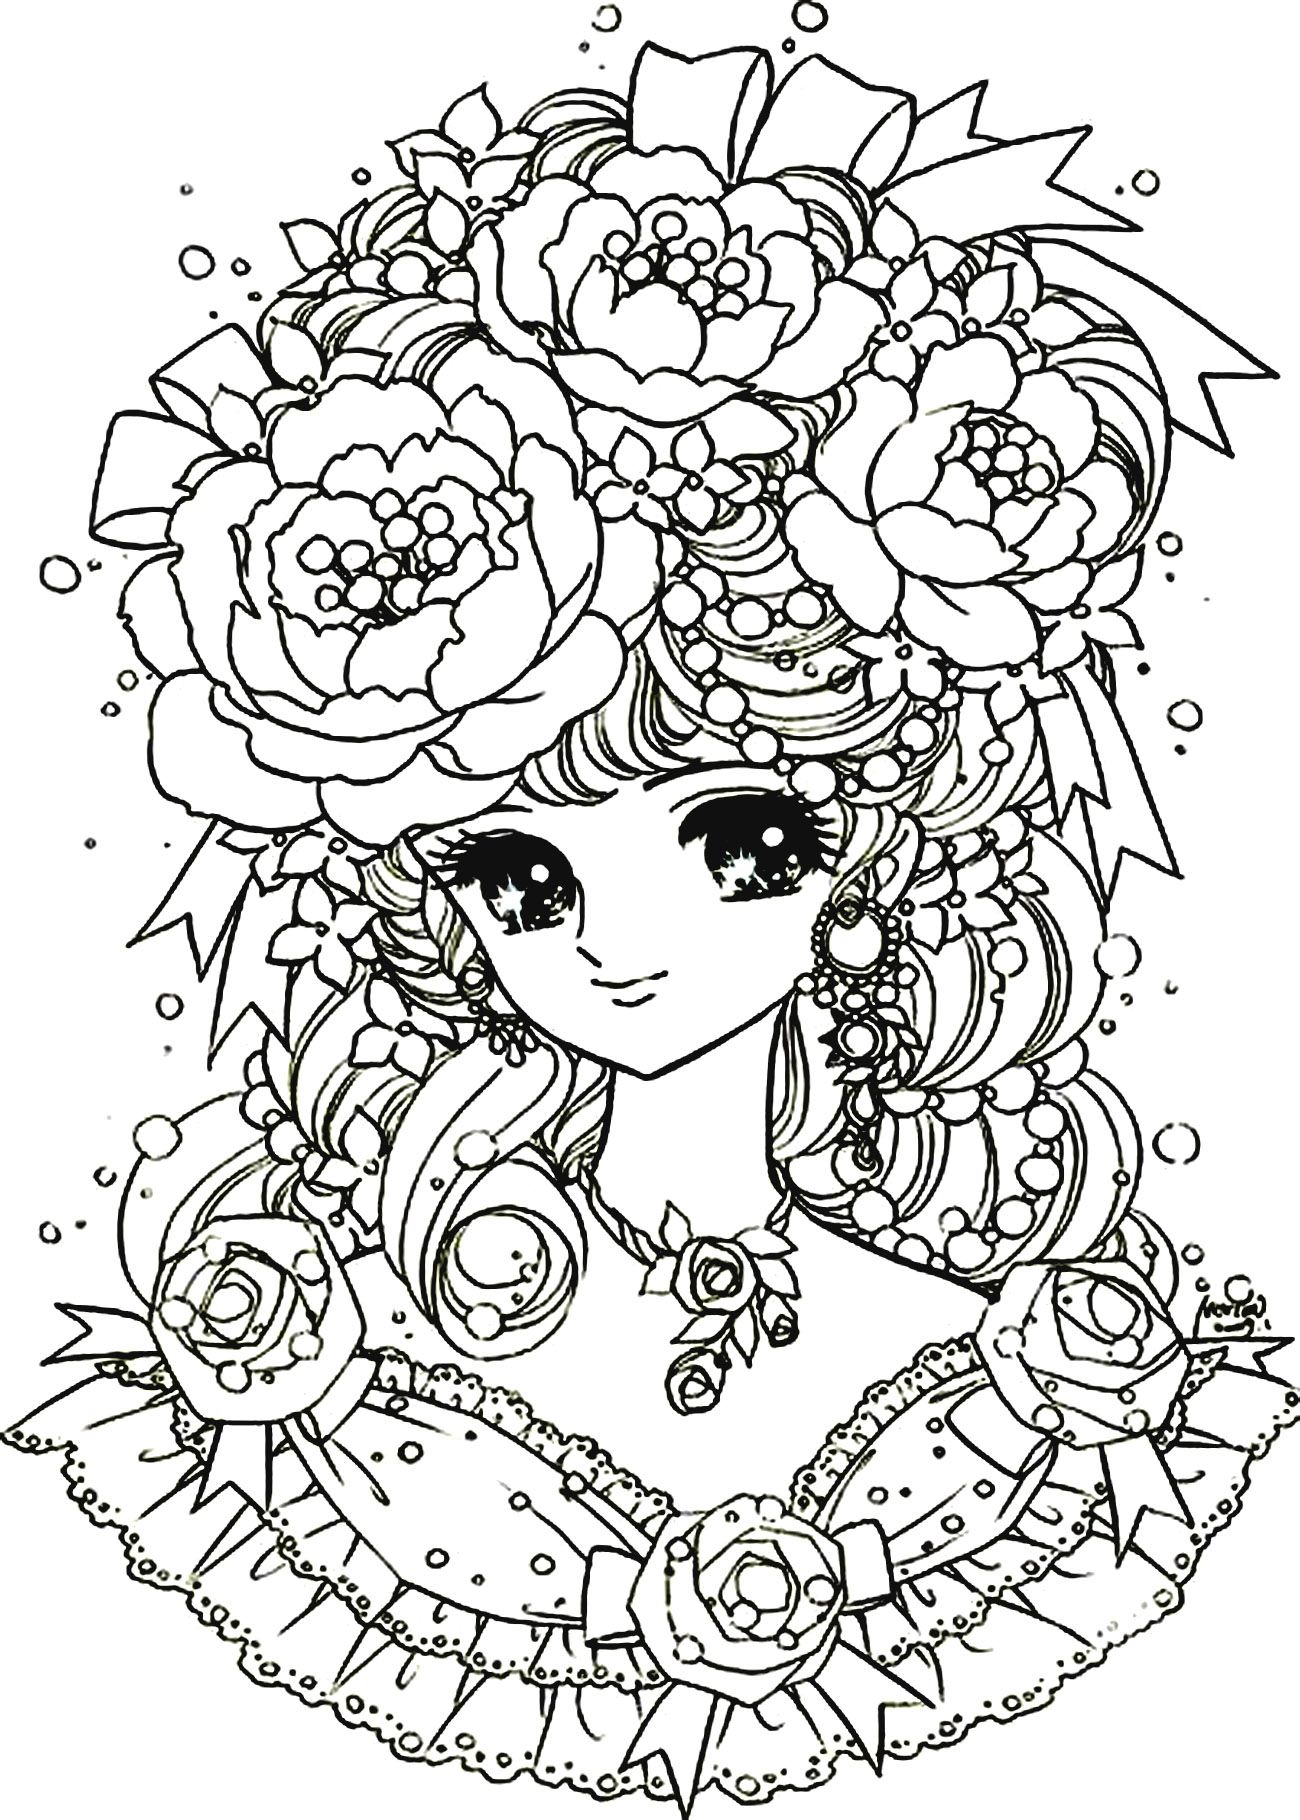 Coloring pages for teens with anxiety - Free Coloring Page Coloring Adult Back To Childhood Manga Girl